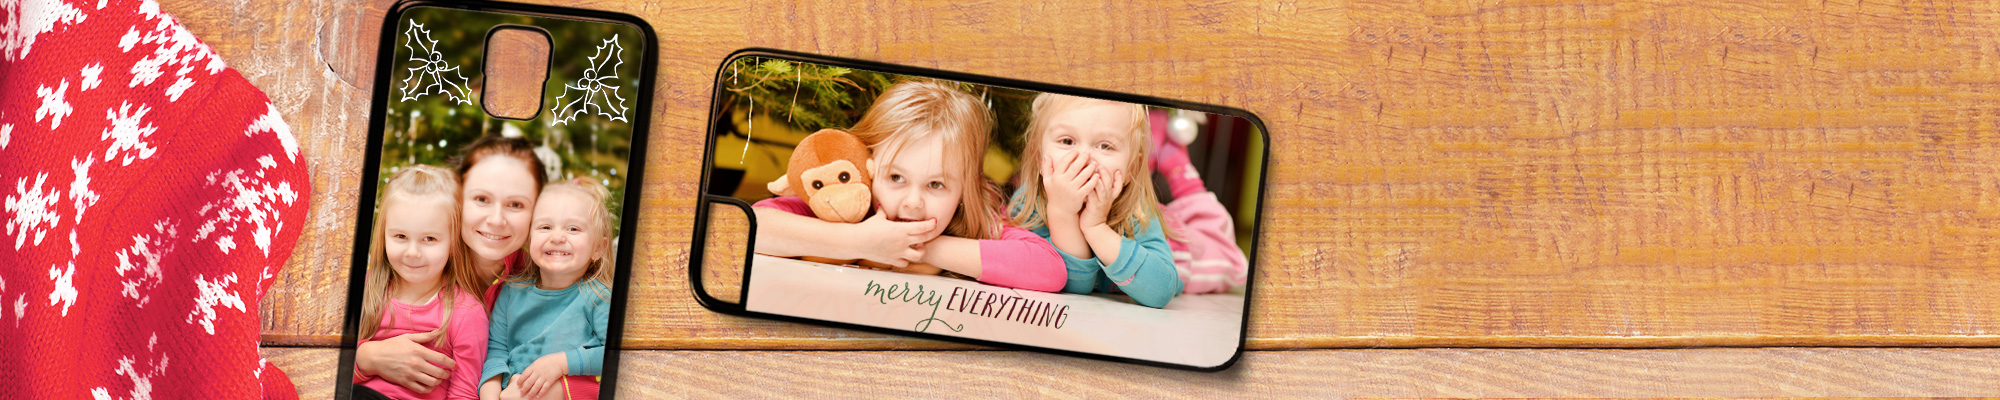 Phone cases : Personalise your iPhone or Samsung phone with a personalised mobile phone case